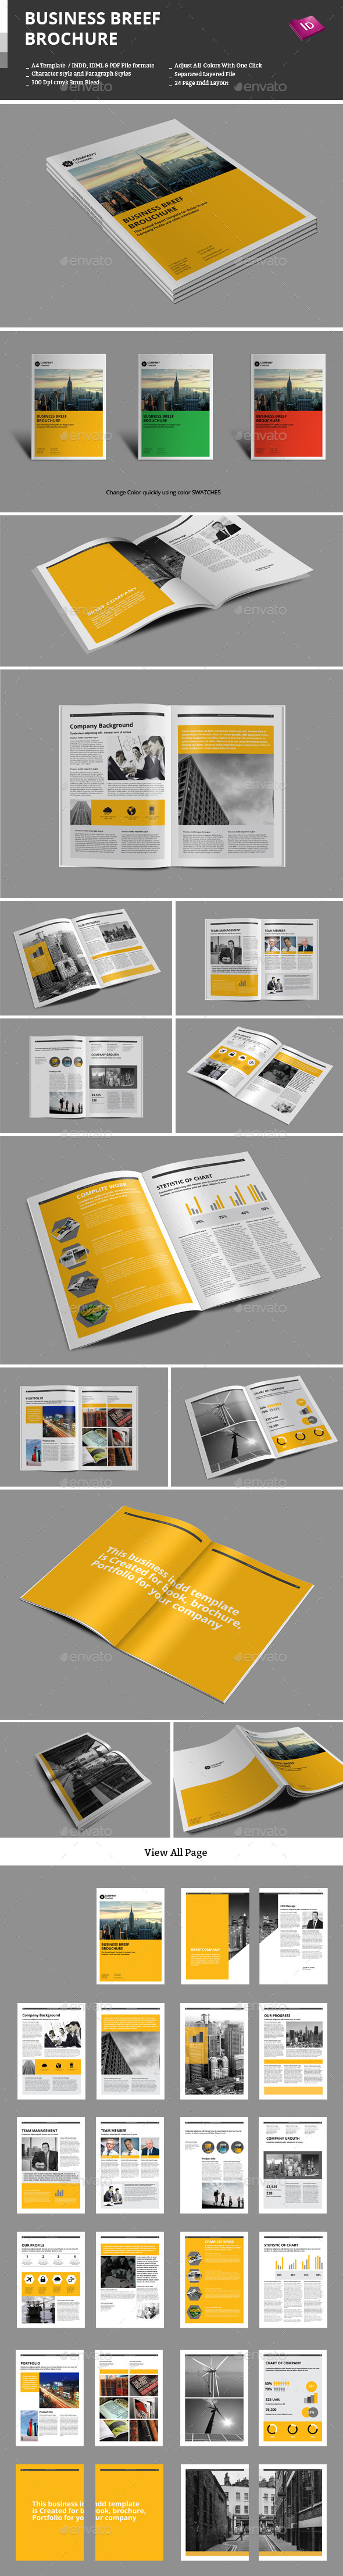 GraphicRiver Business Breef Brochure 9669071